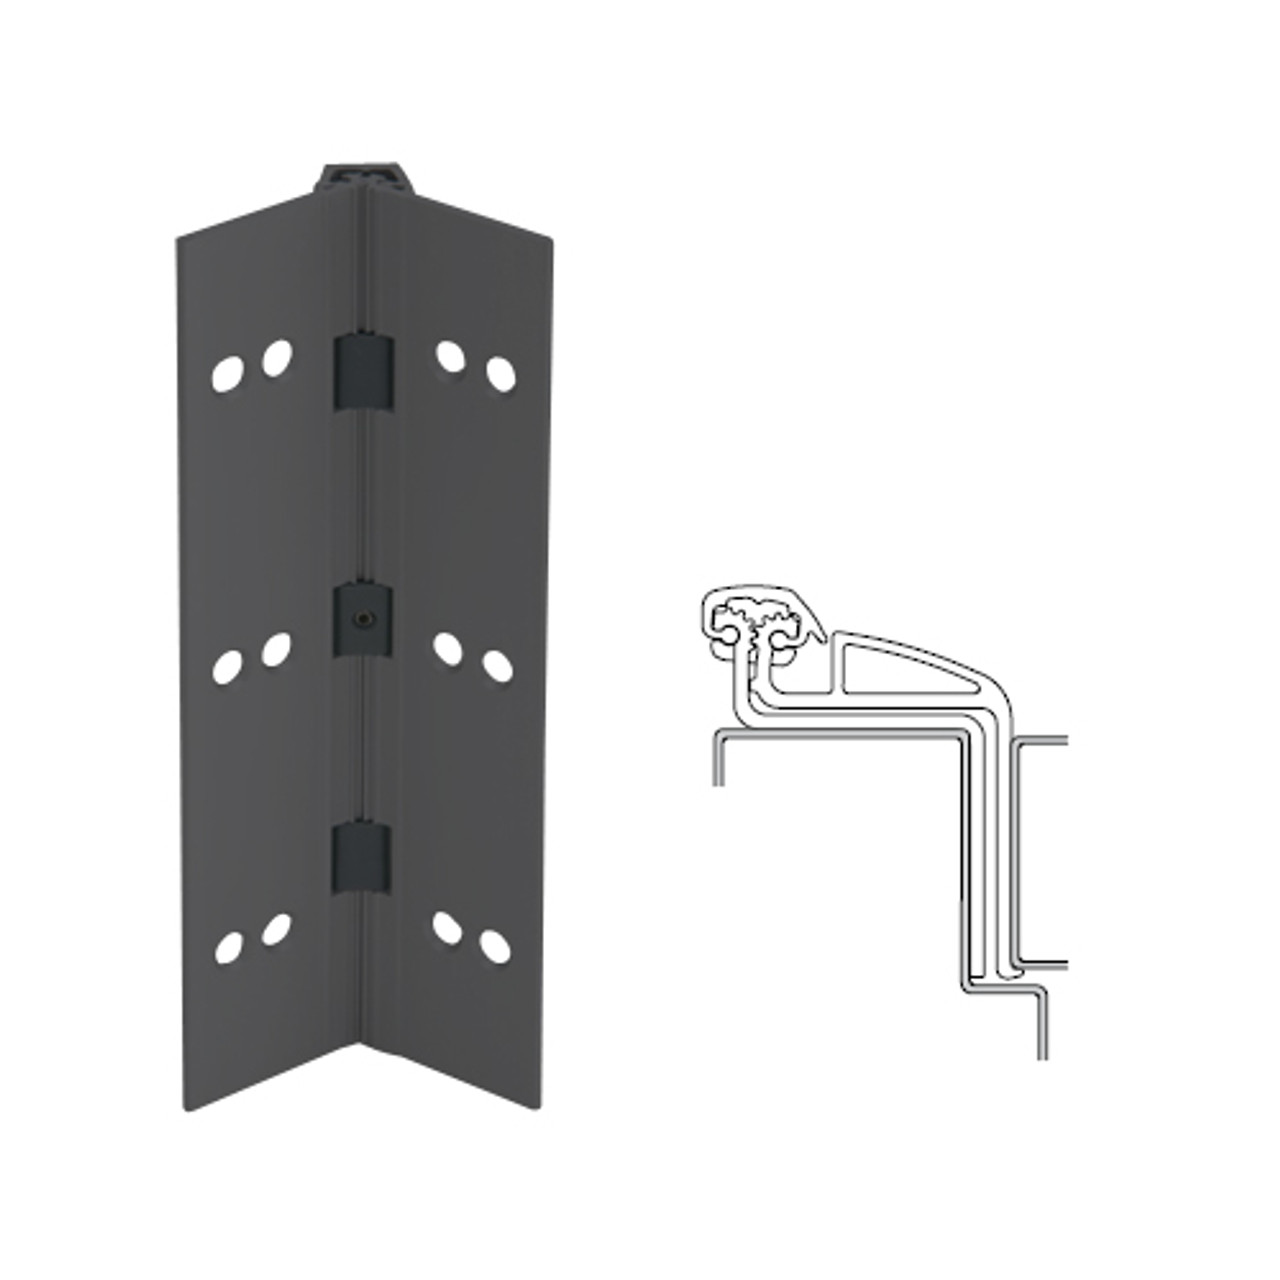 041XY-315AN-120-SECHM IVES Full Mortise Continuous Geared Hinges with Security Screws - Hex Pin Drive in Anodized Black